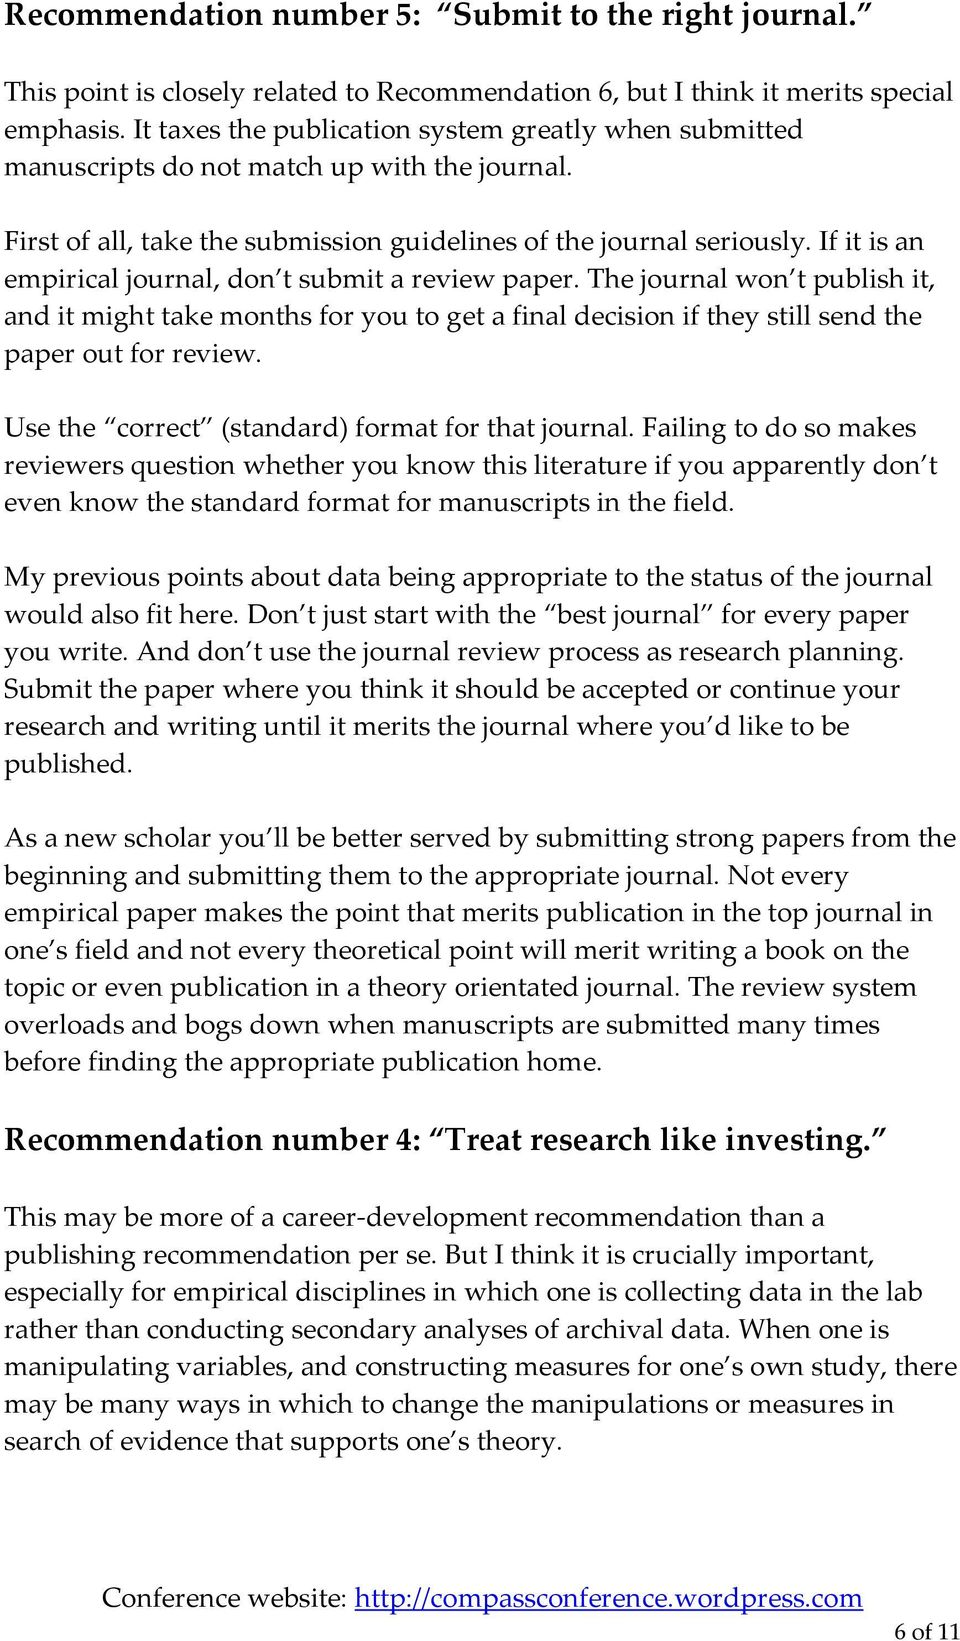 If it is an empirical journal, don t submit a review paper. The journal won t publish it, and it might take months for you to get a final decision if they still send the paper out for review.